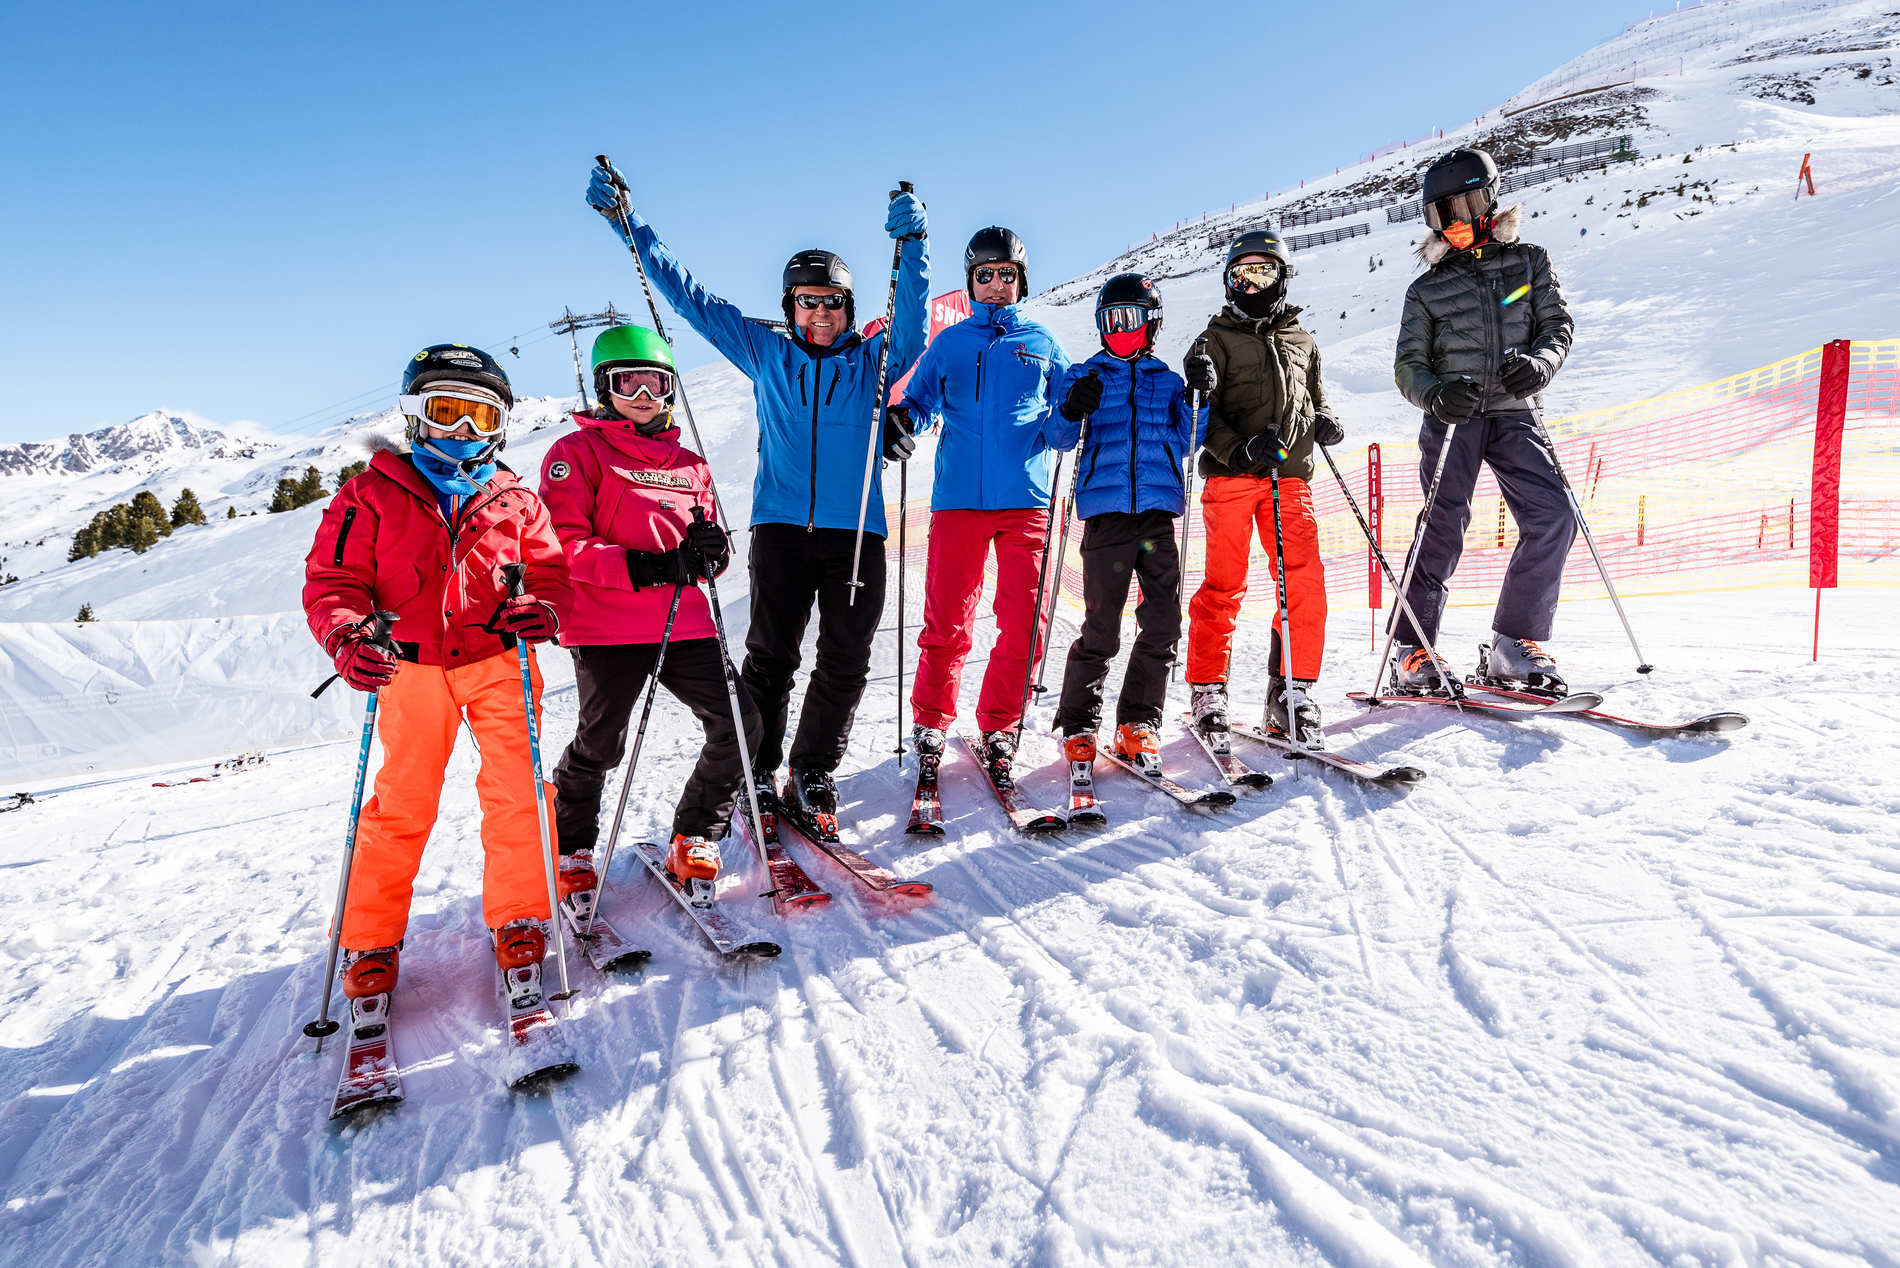 obergurgl 08 03 2019 lifestyle fs sb christian riefenberg qparks 19